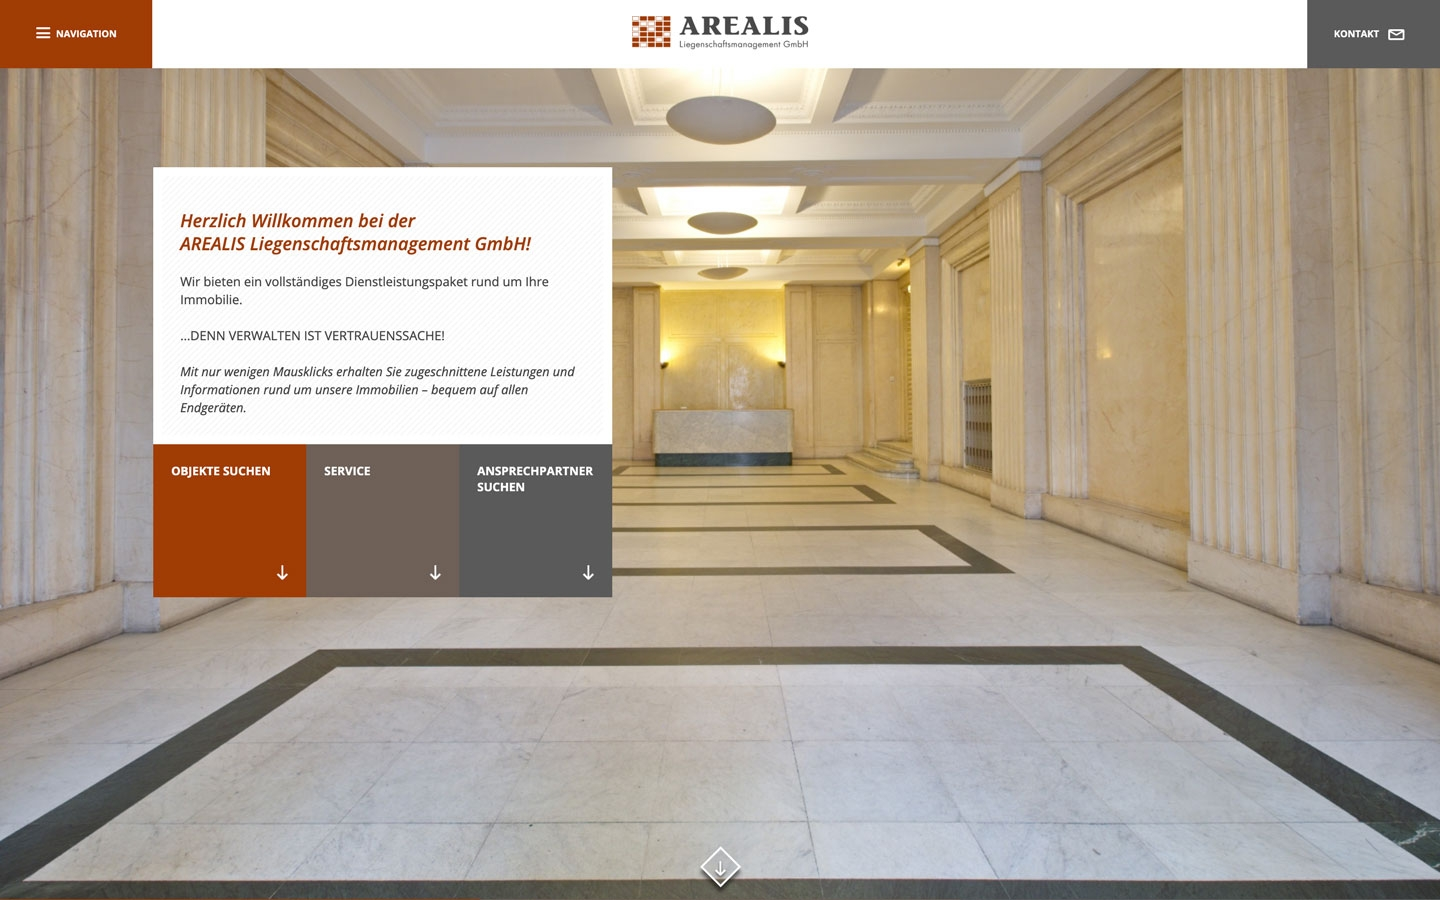 Arealis | arealis.at | 2016 (Screen Only 02) © echonet communication